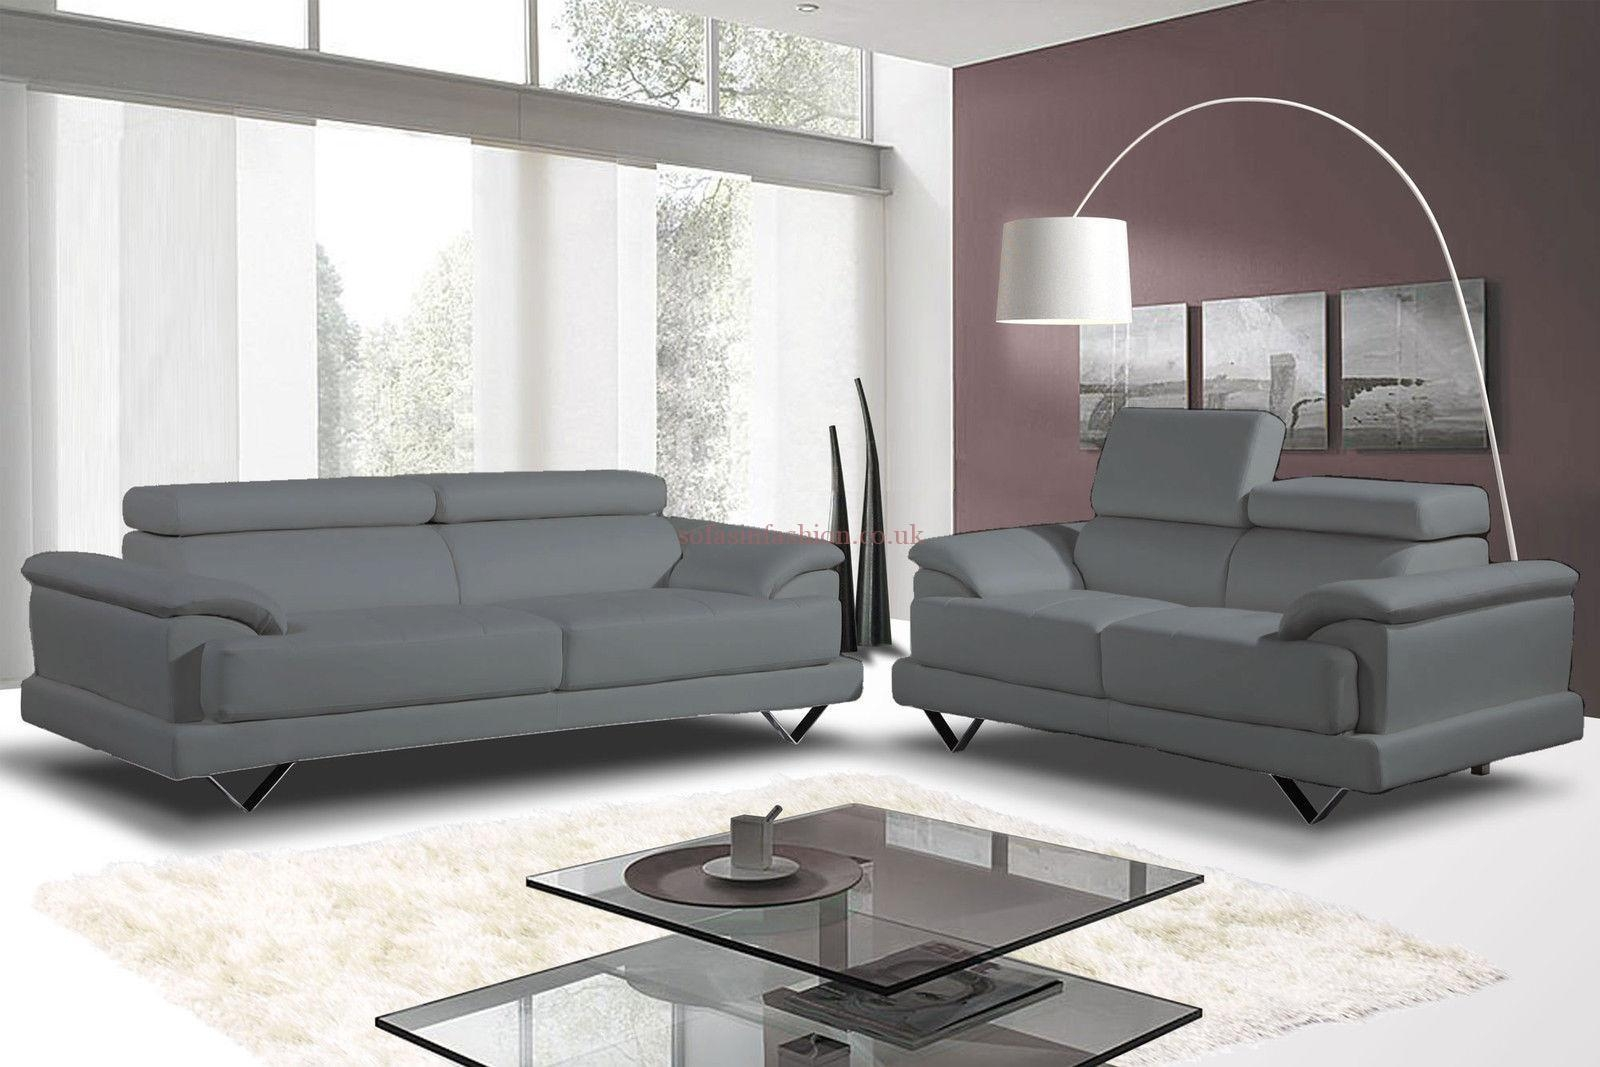 Cheap Gray Sofa Sets | Tehranmix Decoration Intended For Grey Sofa Chairs (Image 3 of 20)